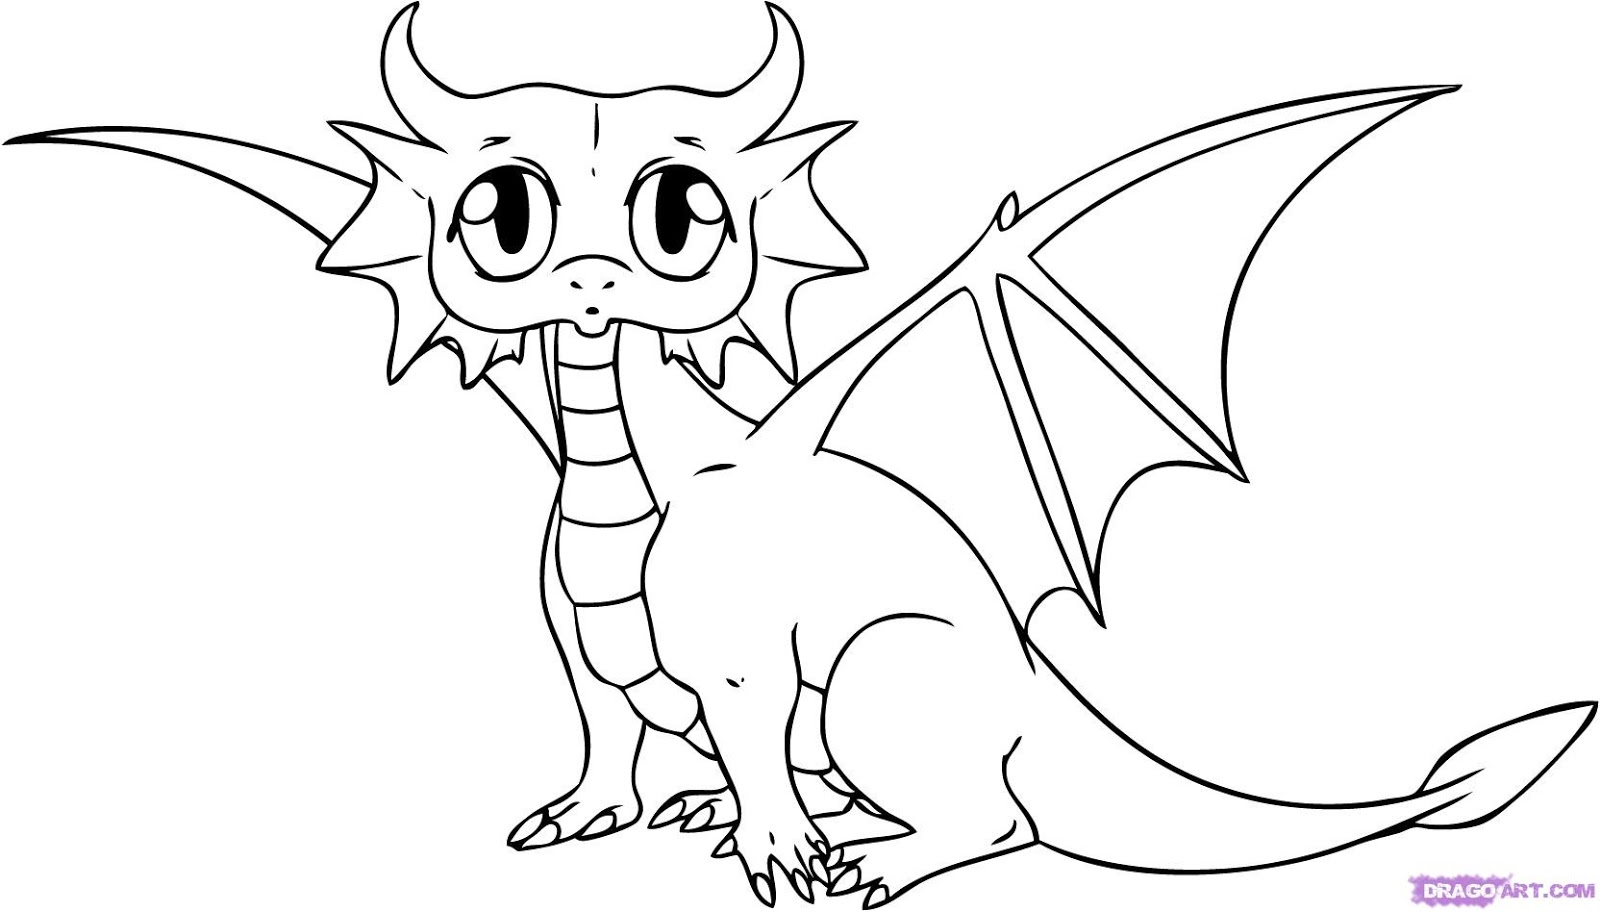 Dragons Easy Drawing At Getdrawings Com Free For Personal Use